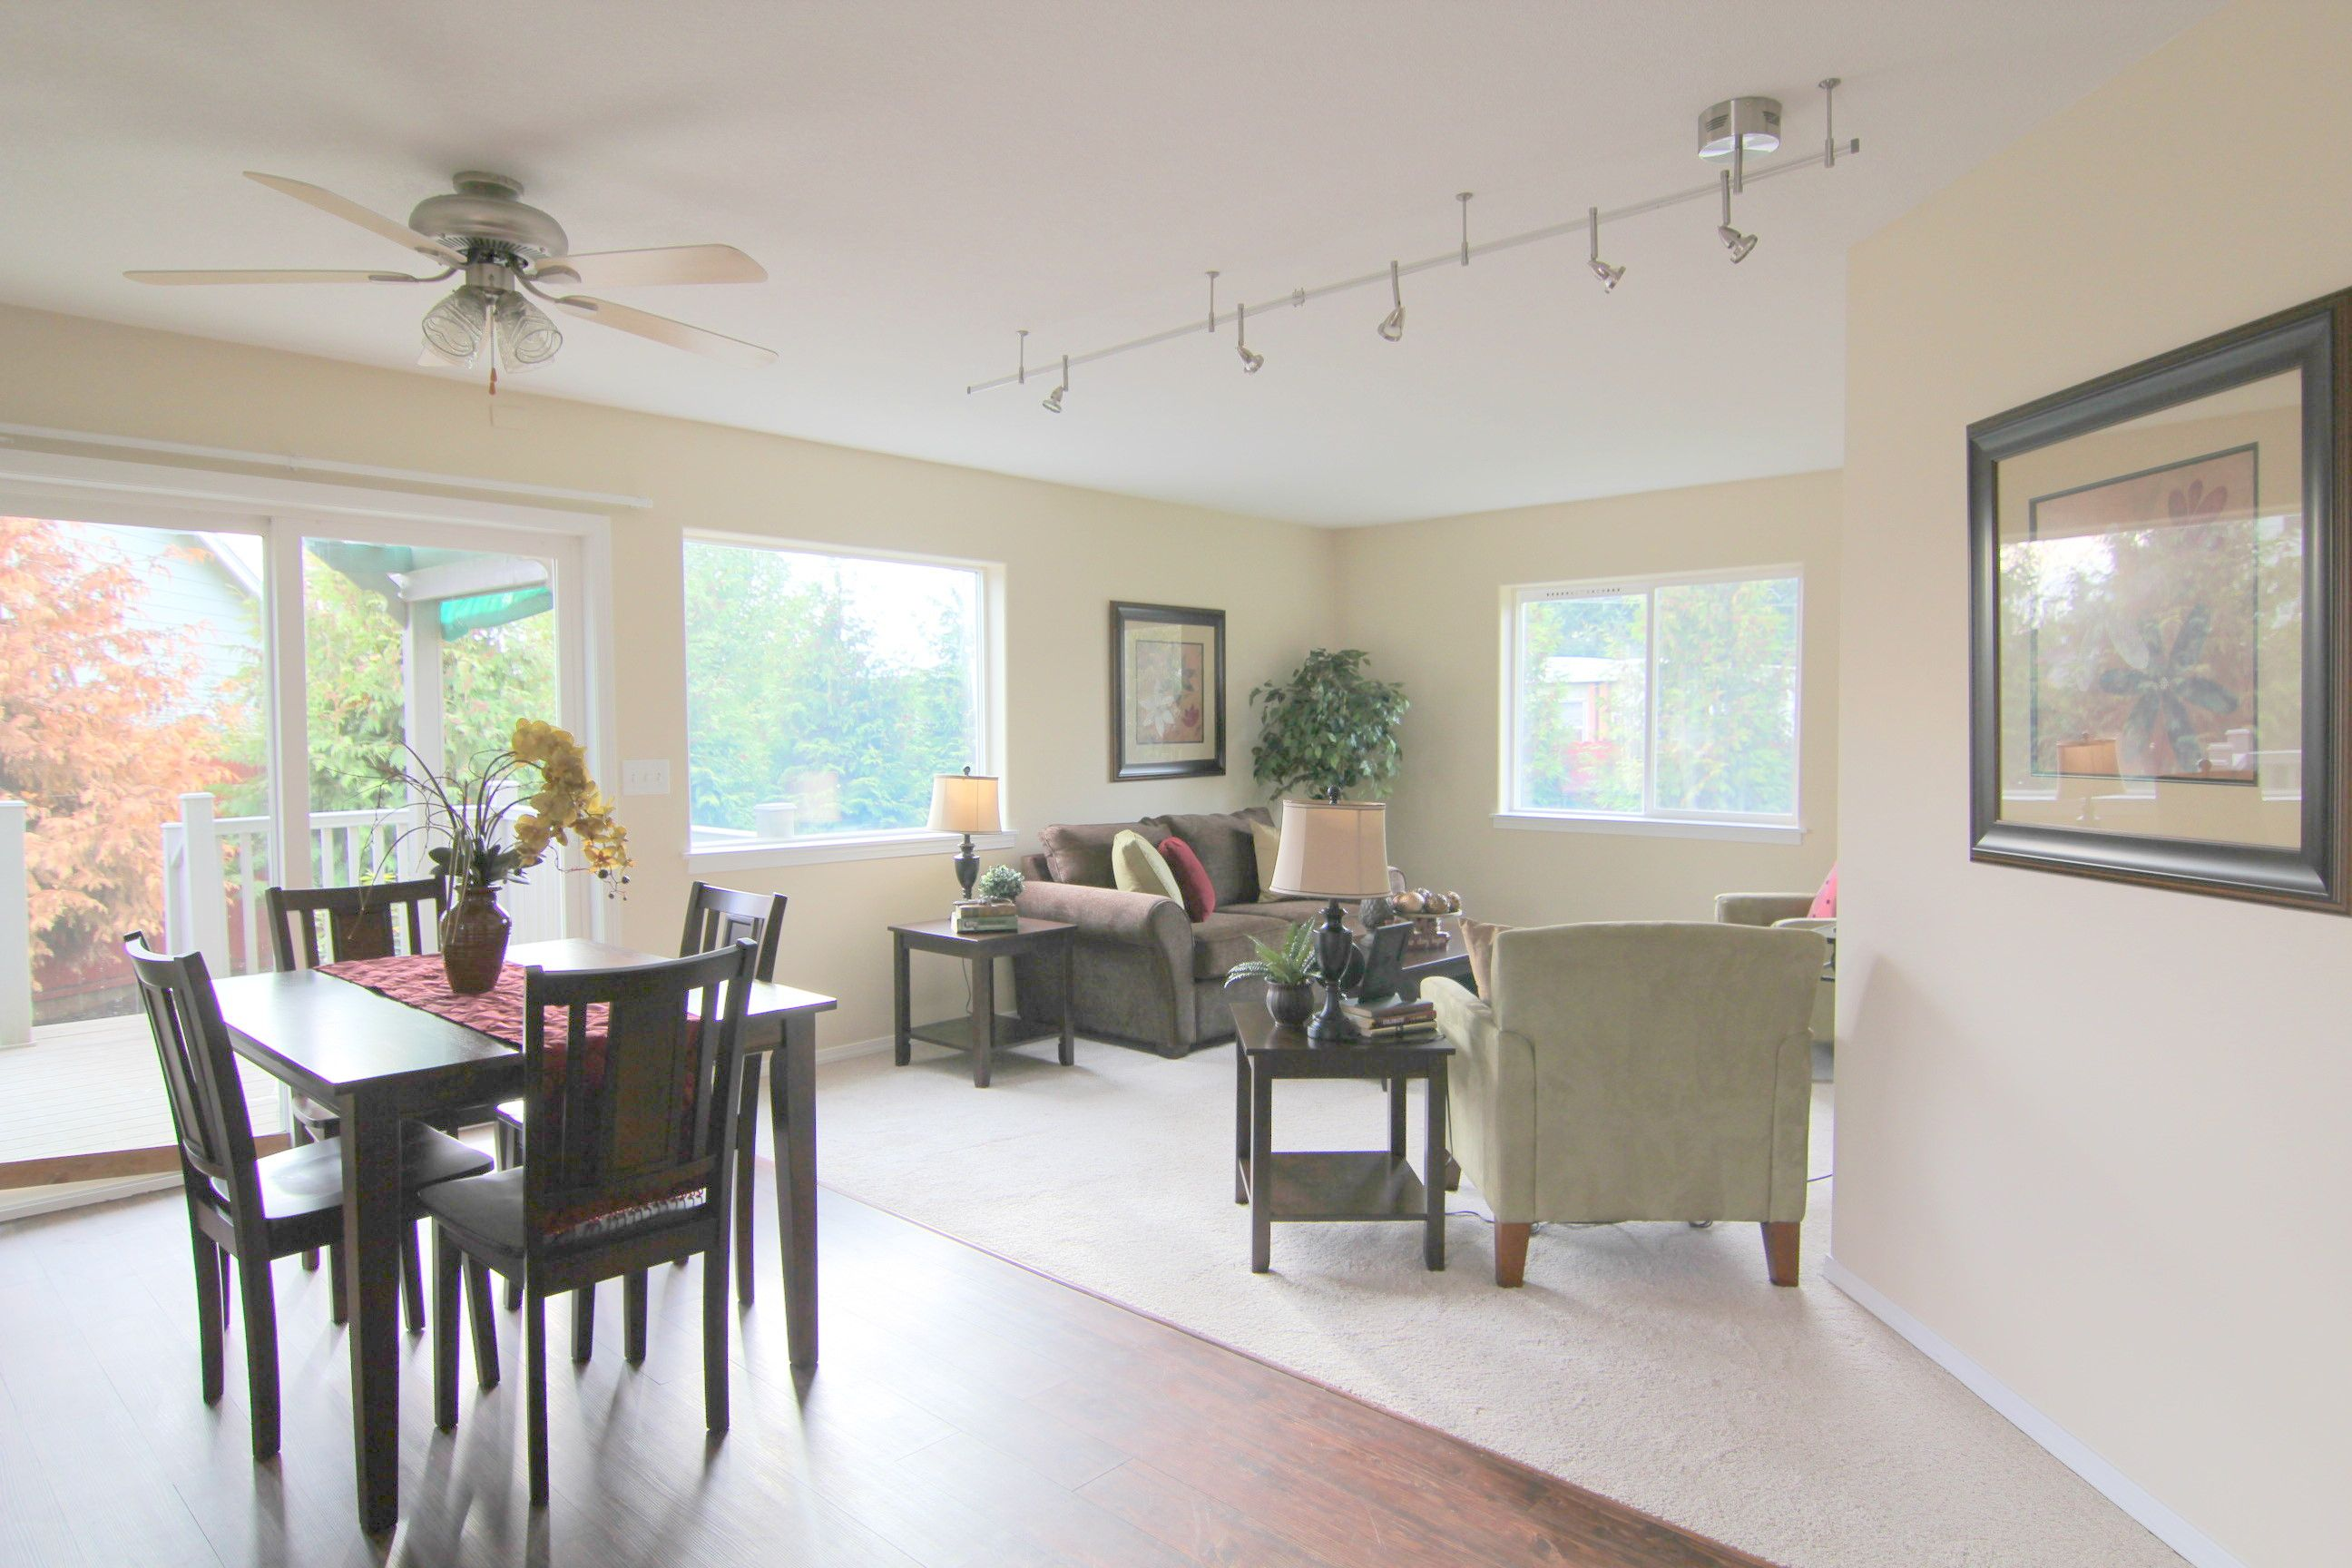 Sherwin Williams Maison Blanche Paint Living Room Professionally